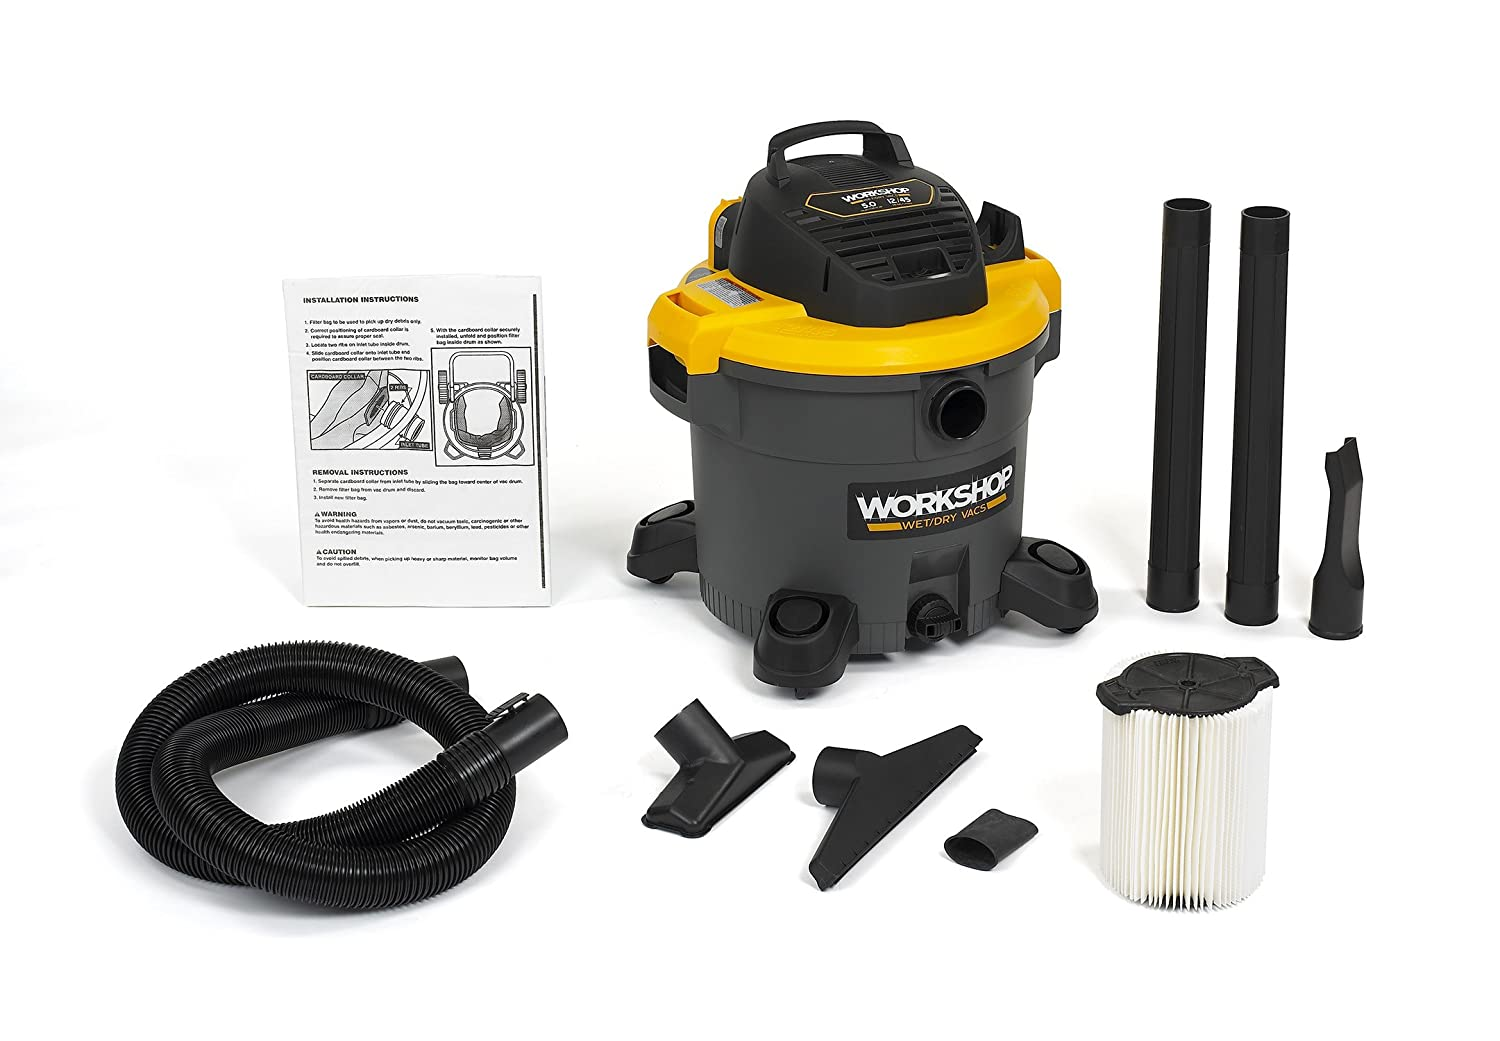 WORKSHOP WS1200VA Heavy Duty General Purpose Wet Dry Vacuum Cleaner